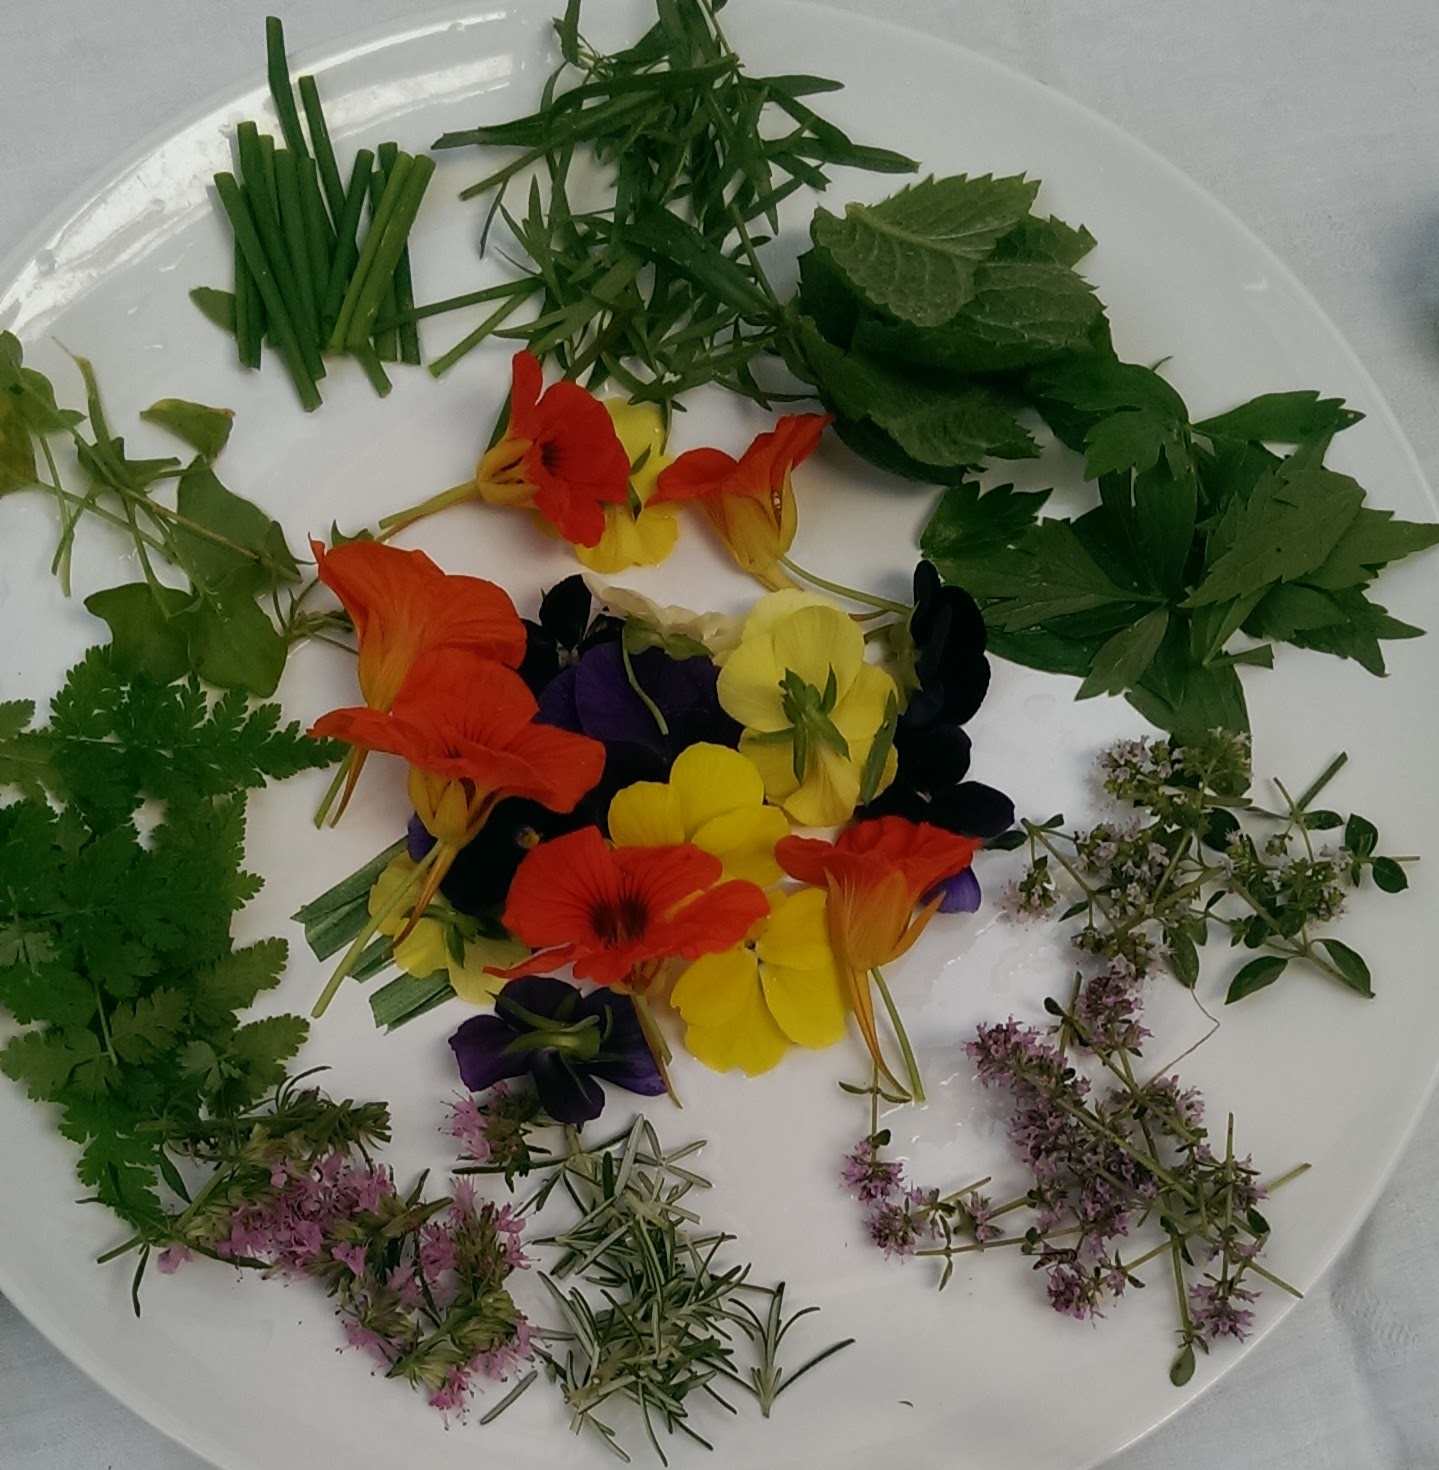 You can grow edible flowers and herbs to add colour and zing to your favourite dishes.